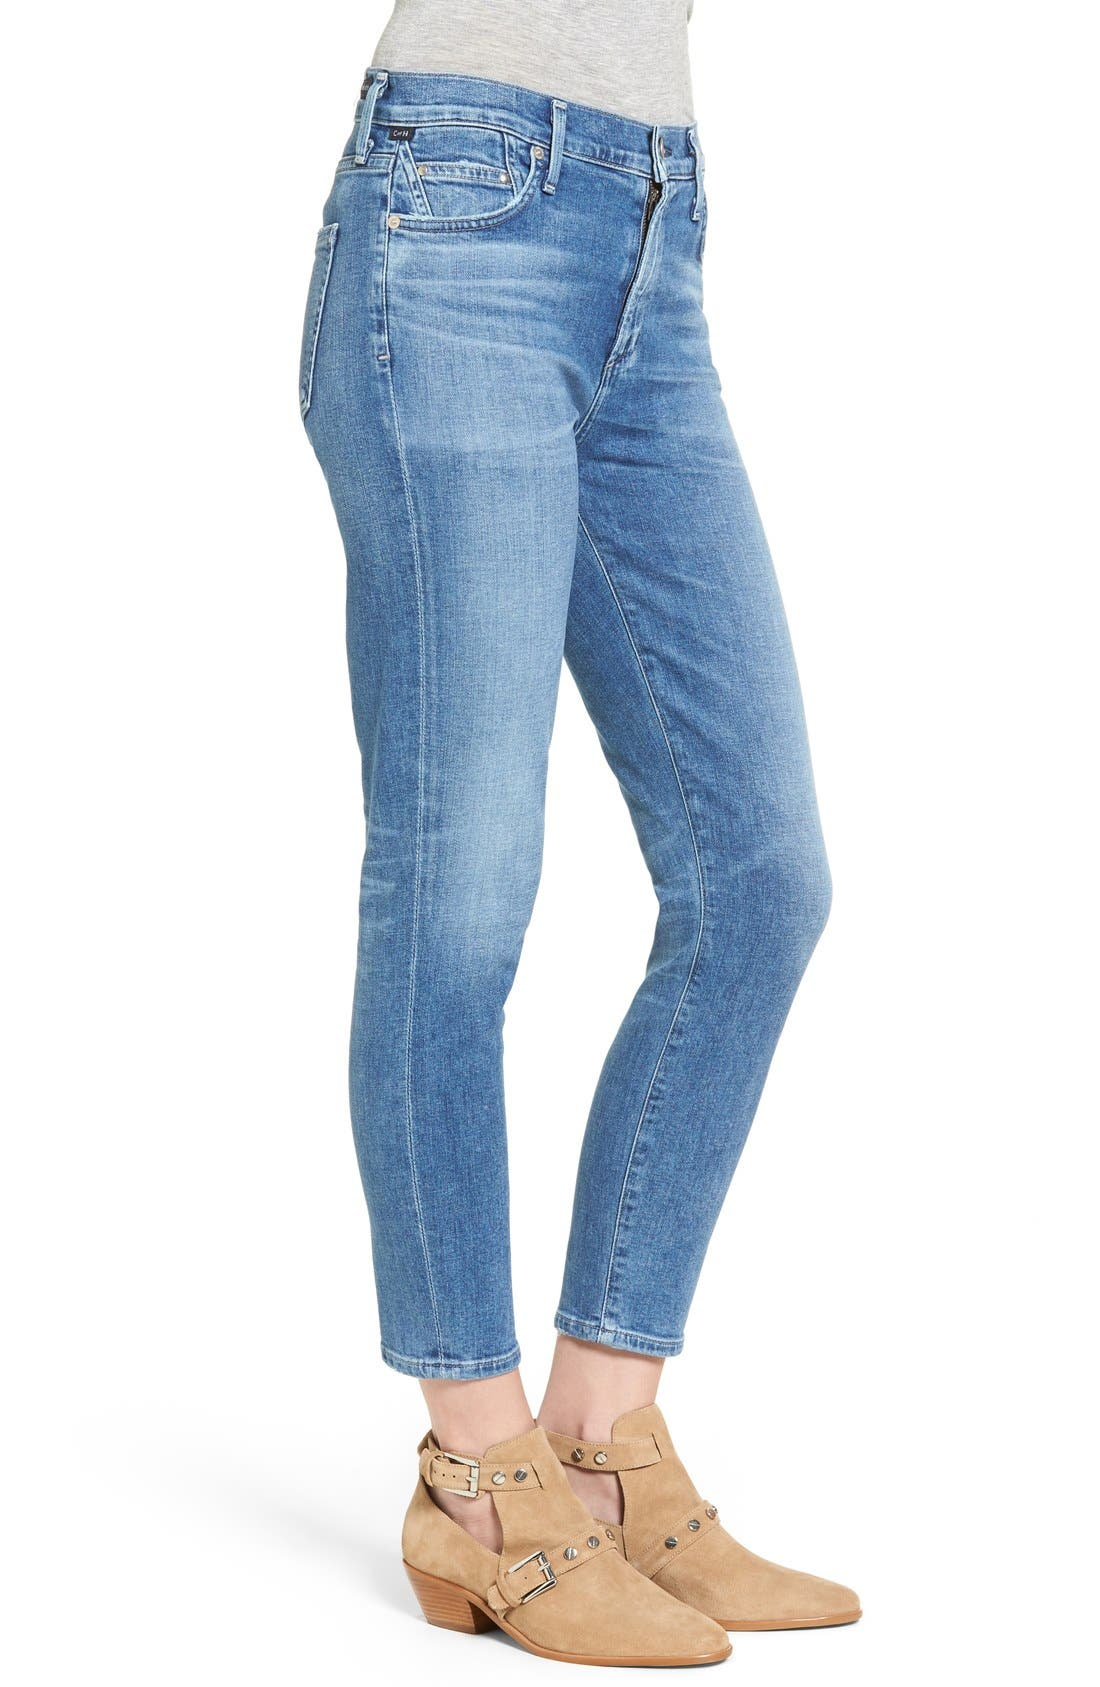 Rocket High Waist Crop Skinny Jeans,                             Alternate thumbnail 5, color,